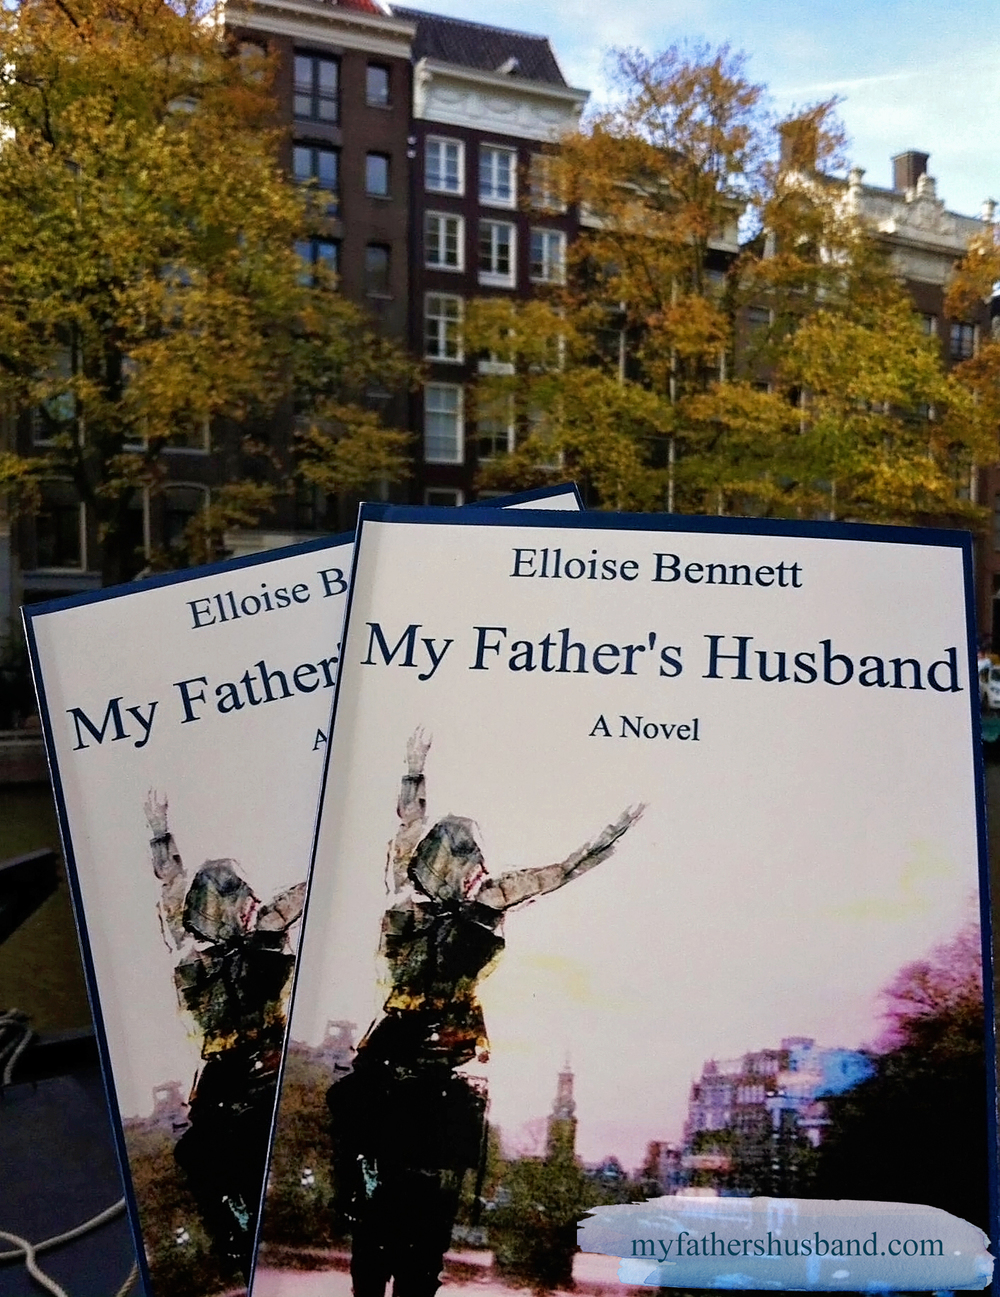 My Father's Husband: A Novel by Elloise Bennett myfathershusband.com